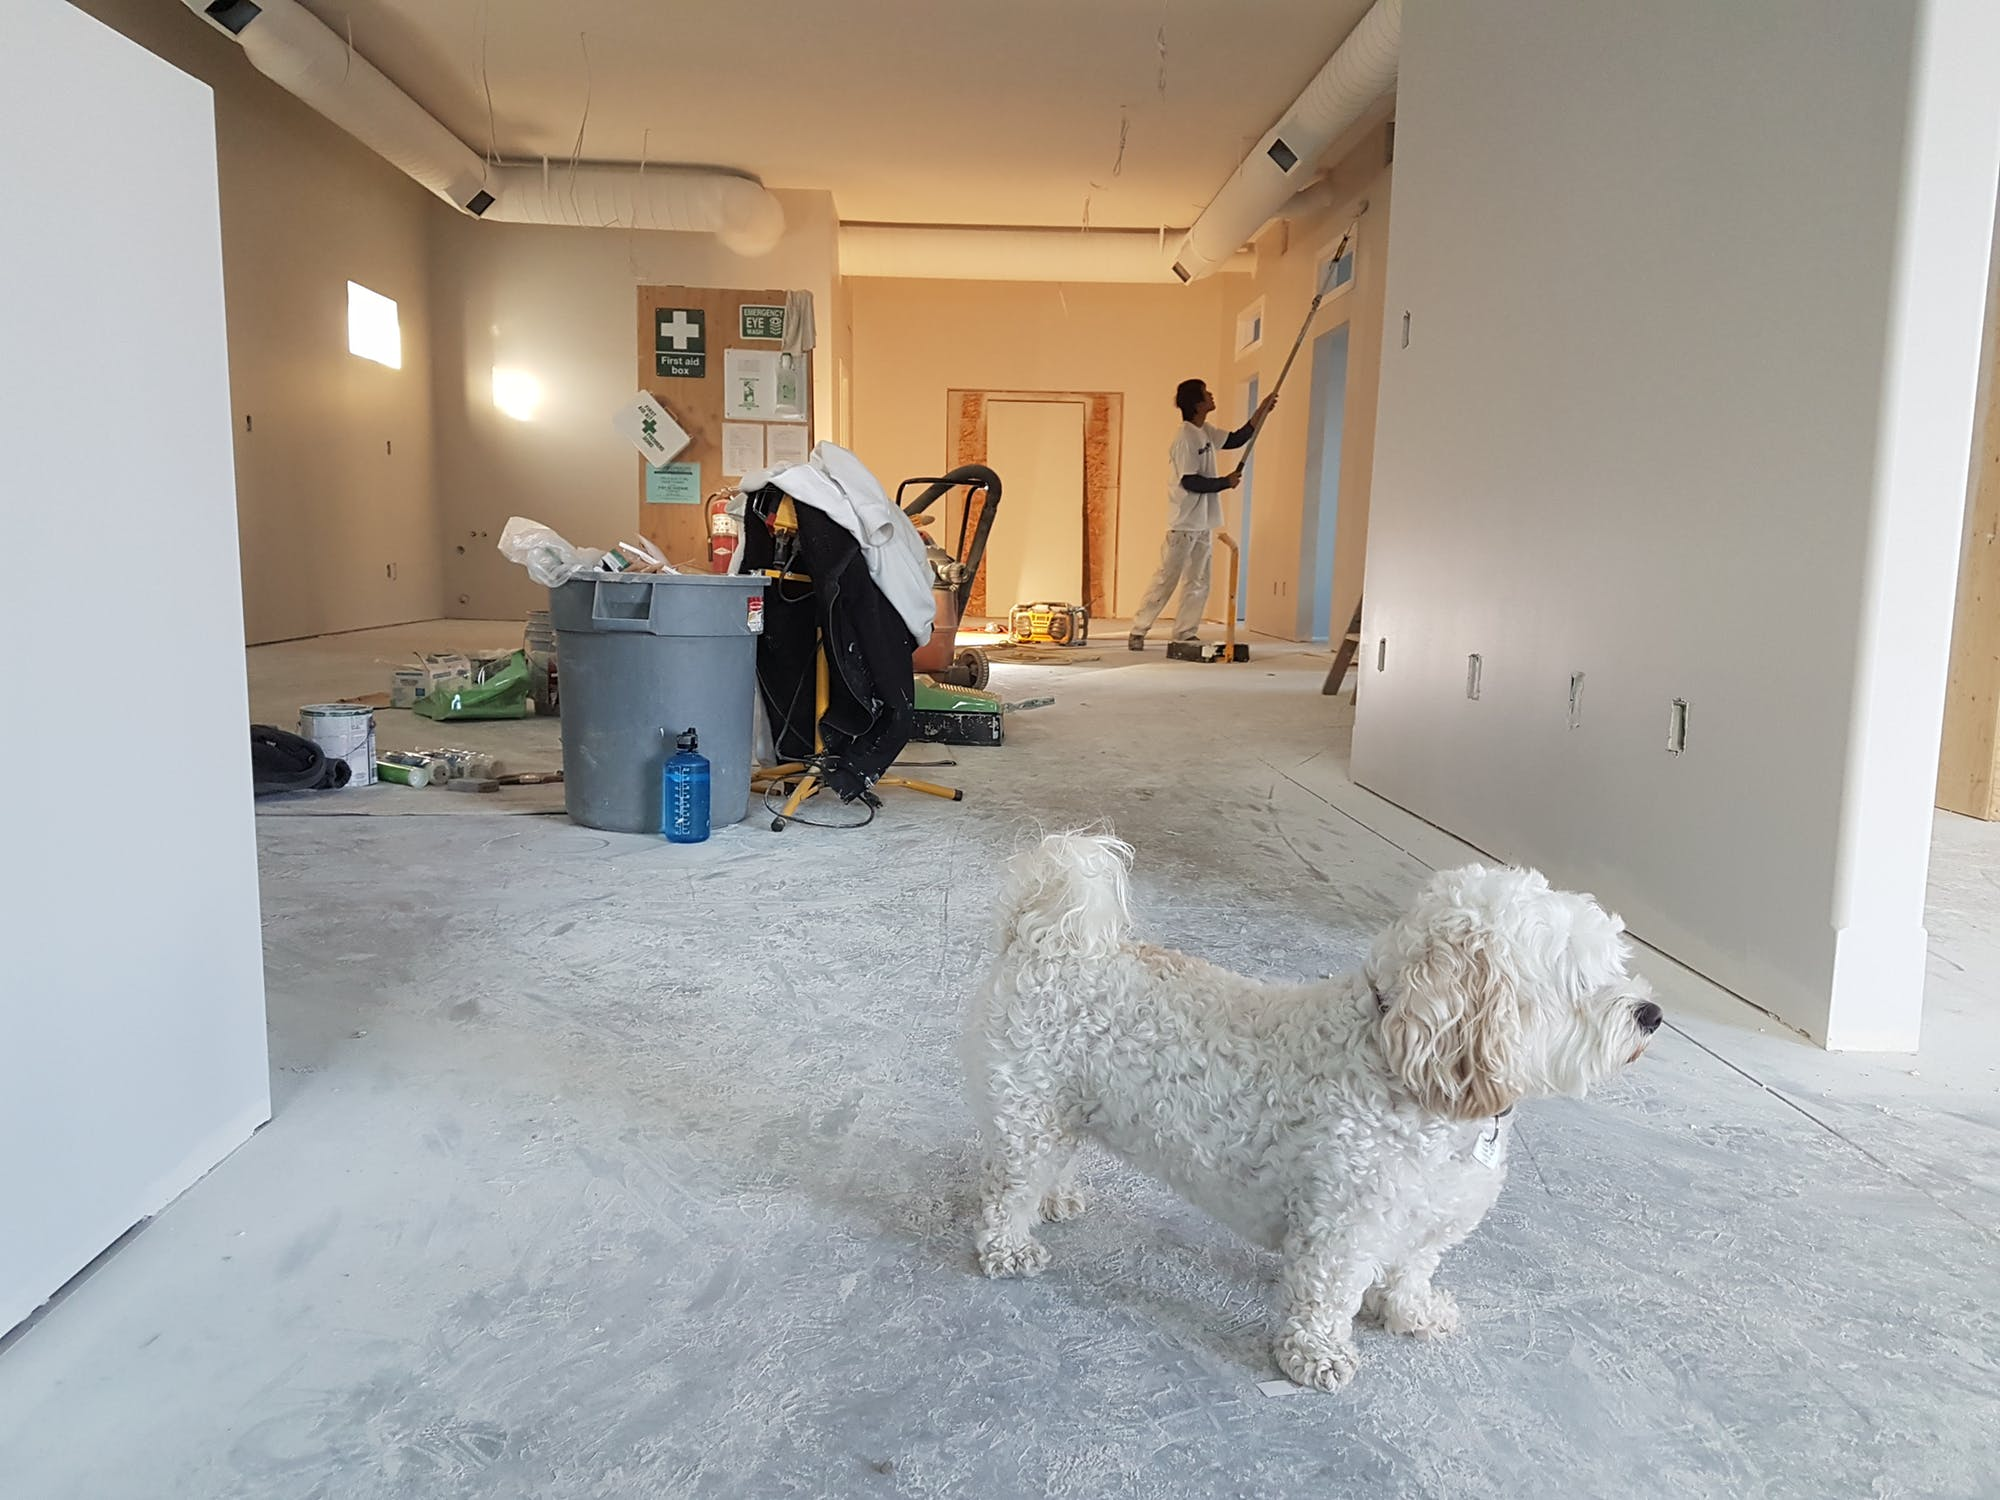 Relocate or Renovate: Reasons to Stay Put and Improve Your Home